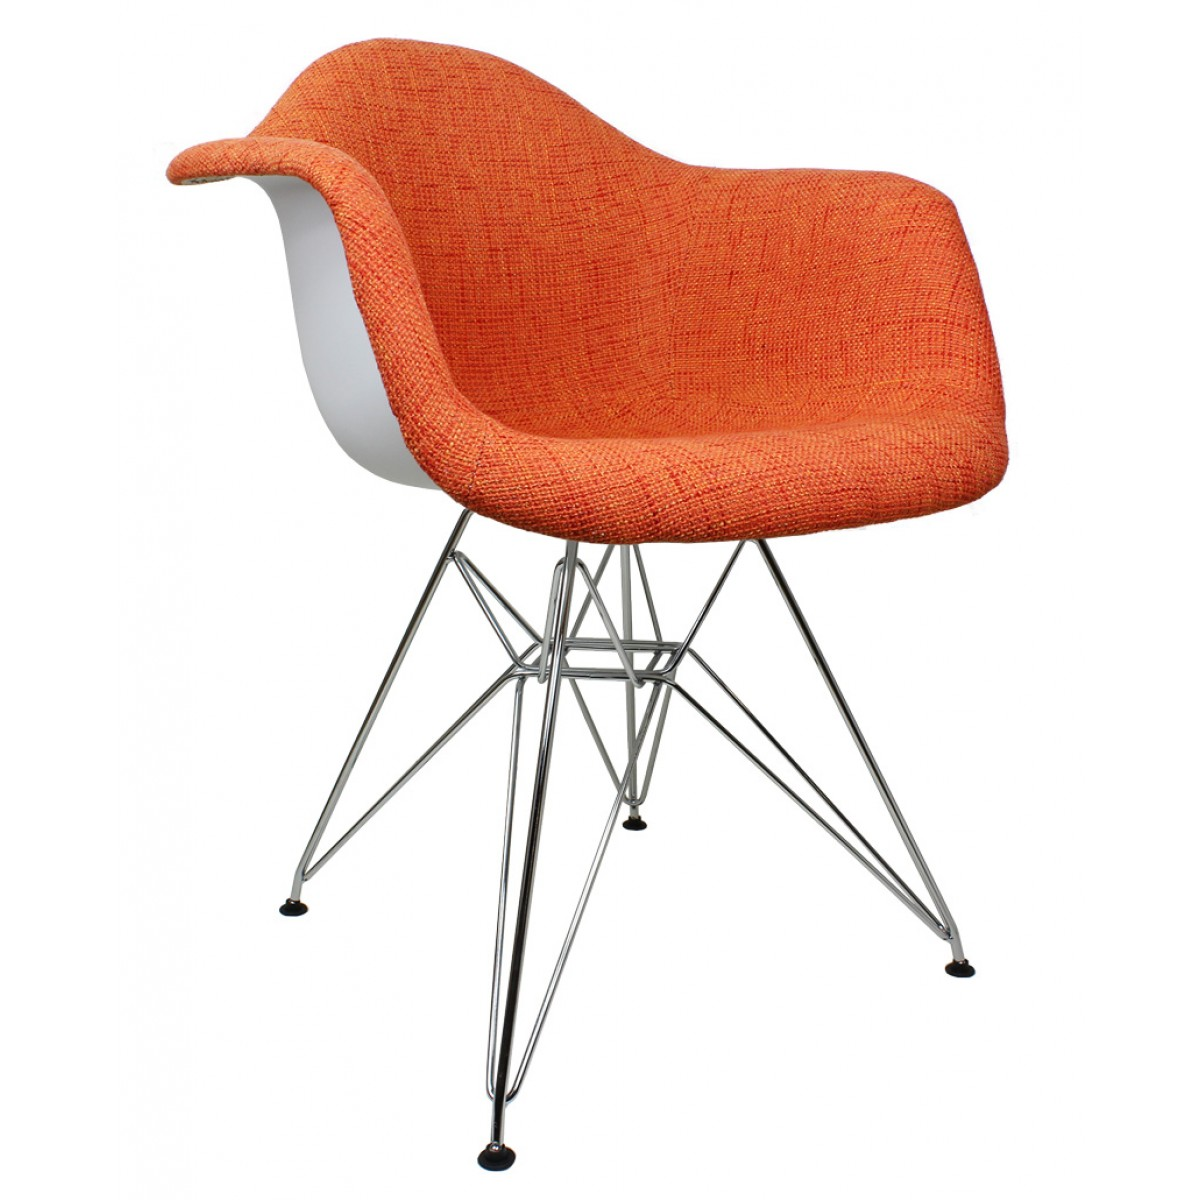 Charmant Orange Woven Fabric Accent Arm Chair